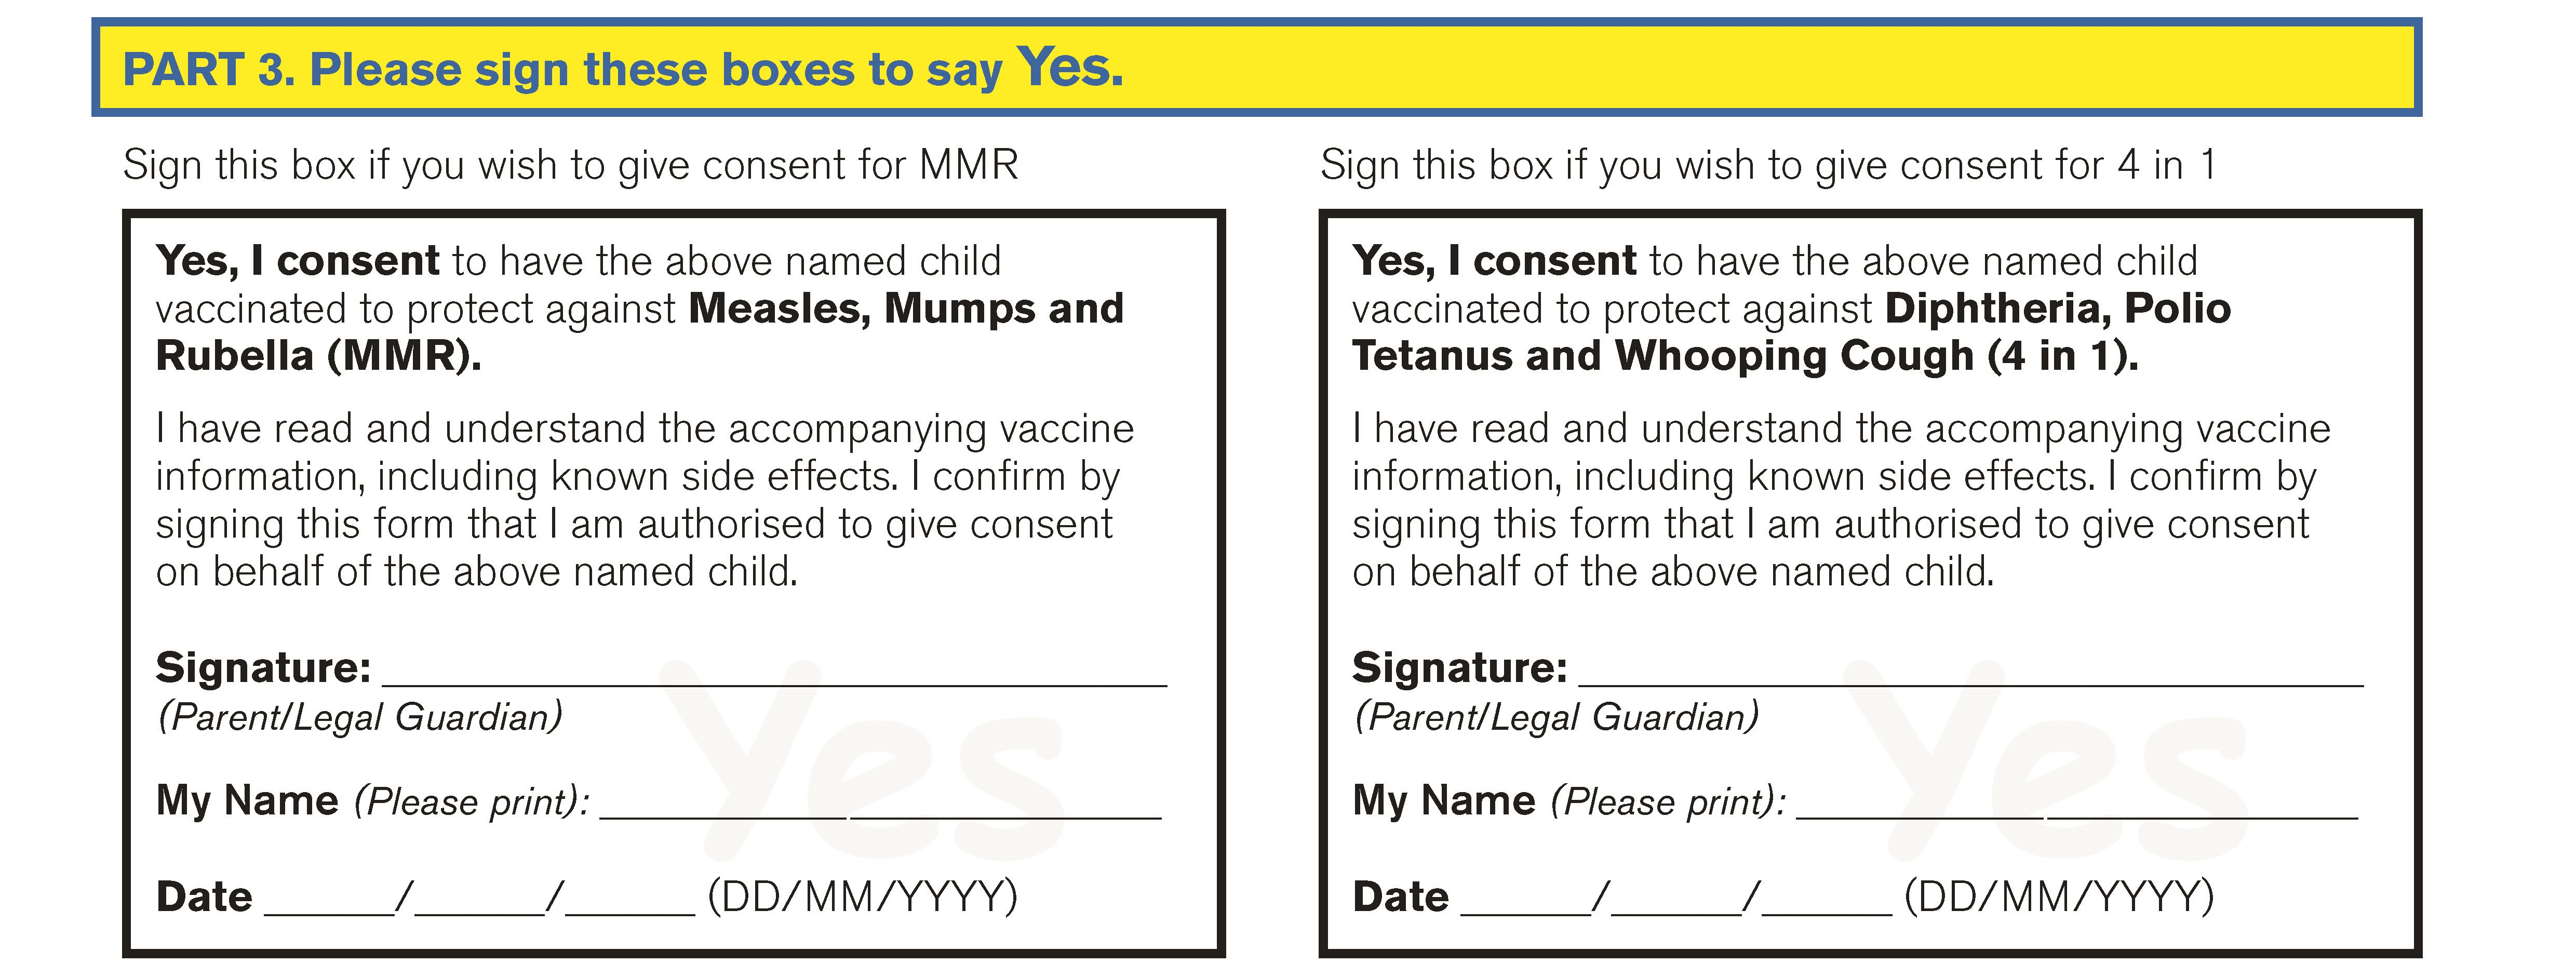 4 in 1 and mmr yes__. common queries about school consent forms hse ie